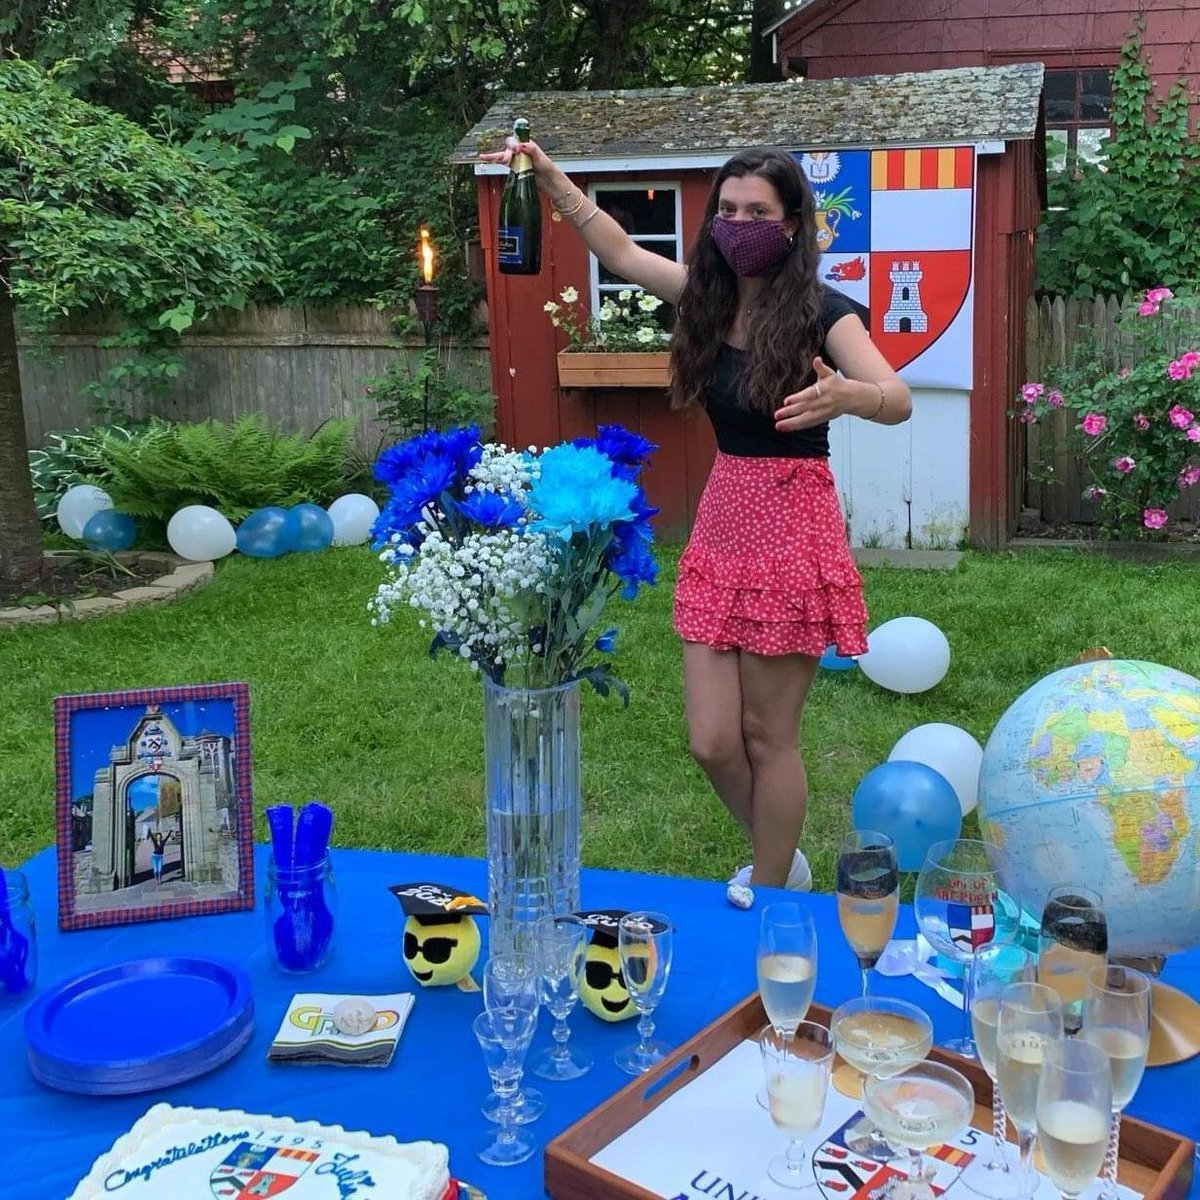 Julia Stockwell celebrated her graduation with a University of Aberdeen-themed garden party at her home near Boston, Massachusetts -  even featuring UoA tartan face masks! Congratulations Julia and to all our graduates! 🎓🎉 #Classof2020 #ABDNFamily https://t.co/zCjiimbU9g https://t.co/PslKoYL4uq